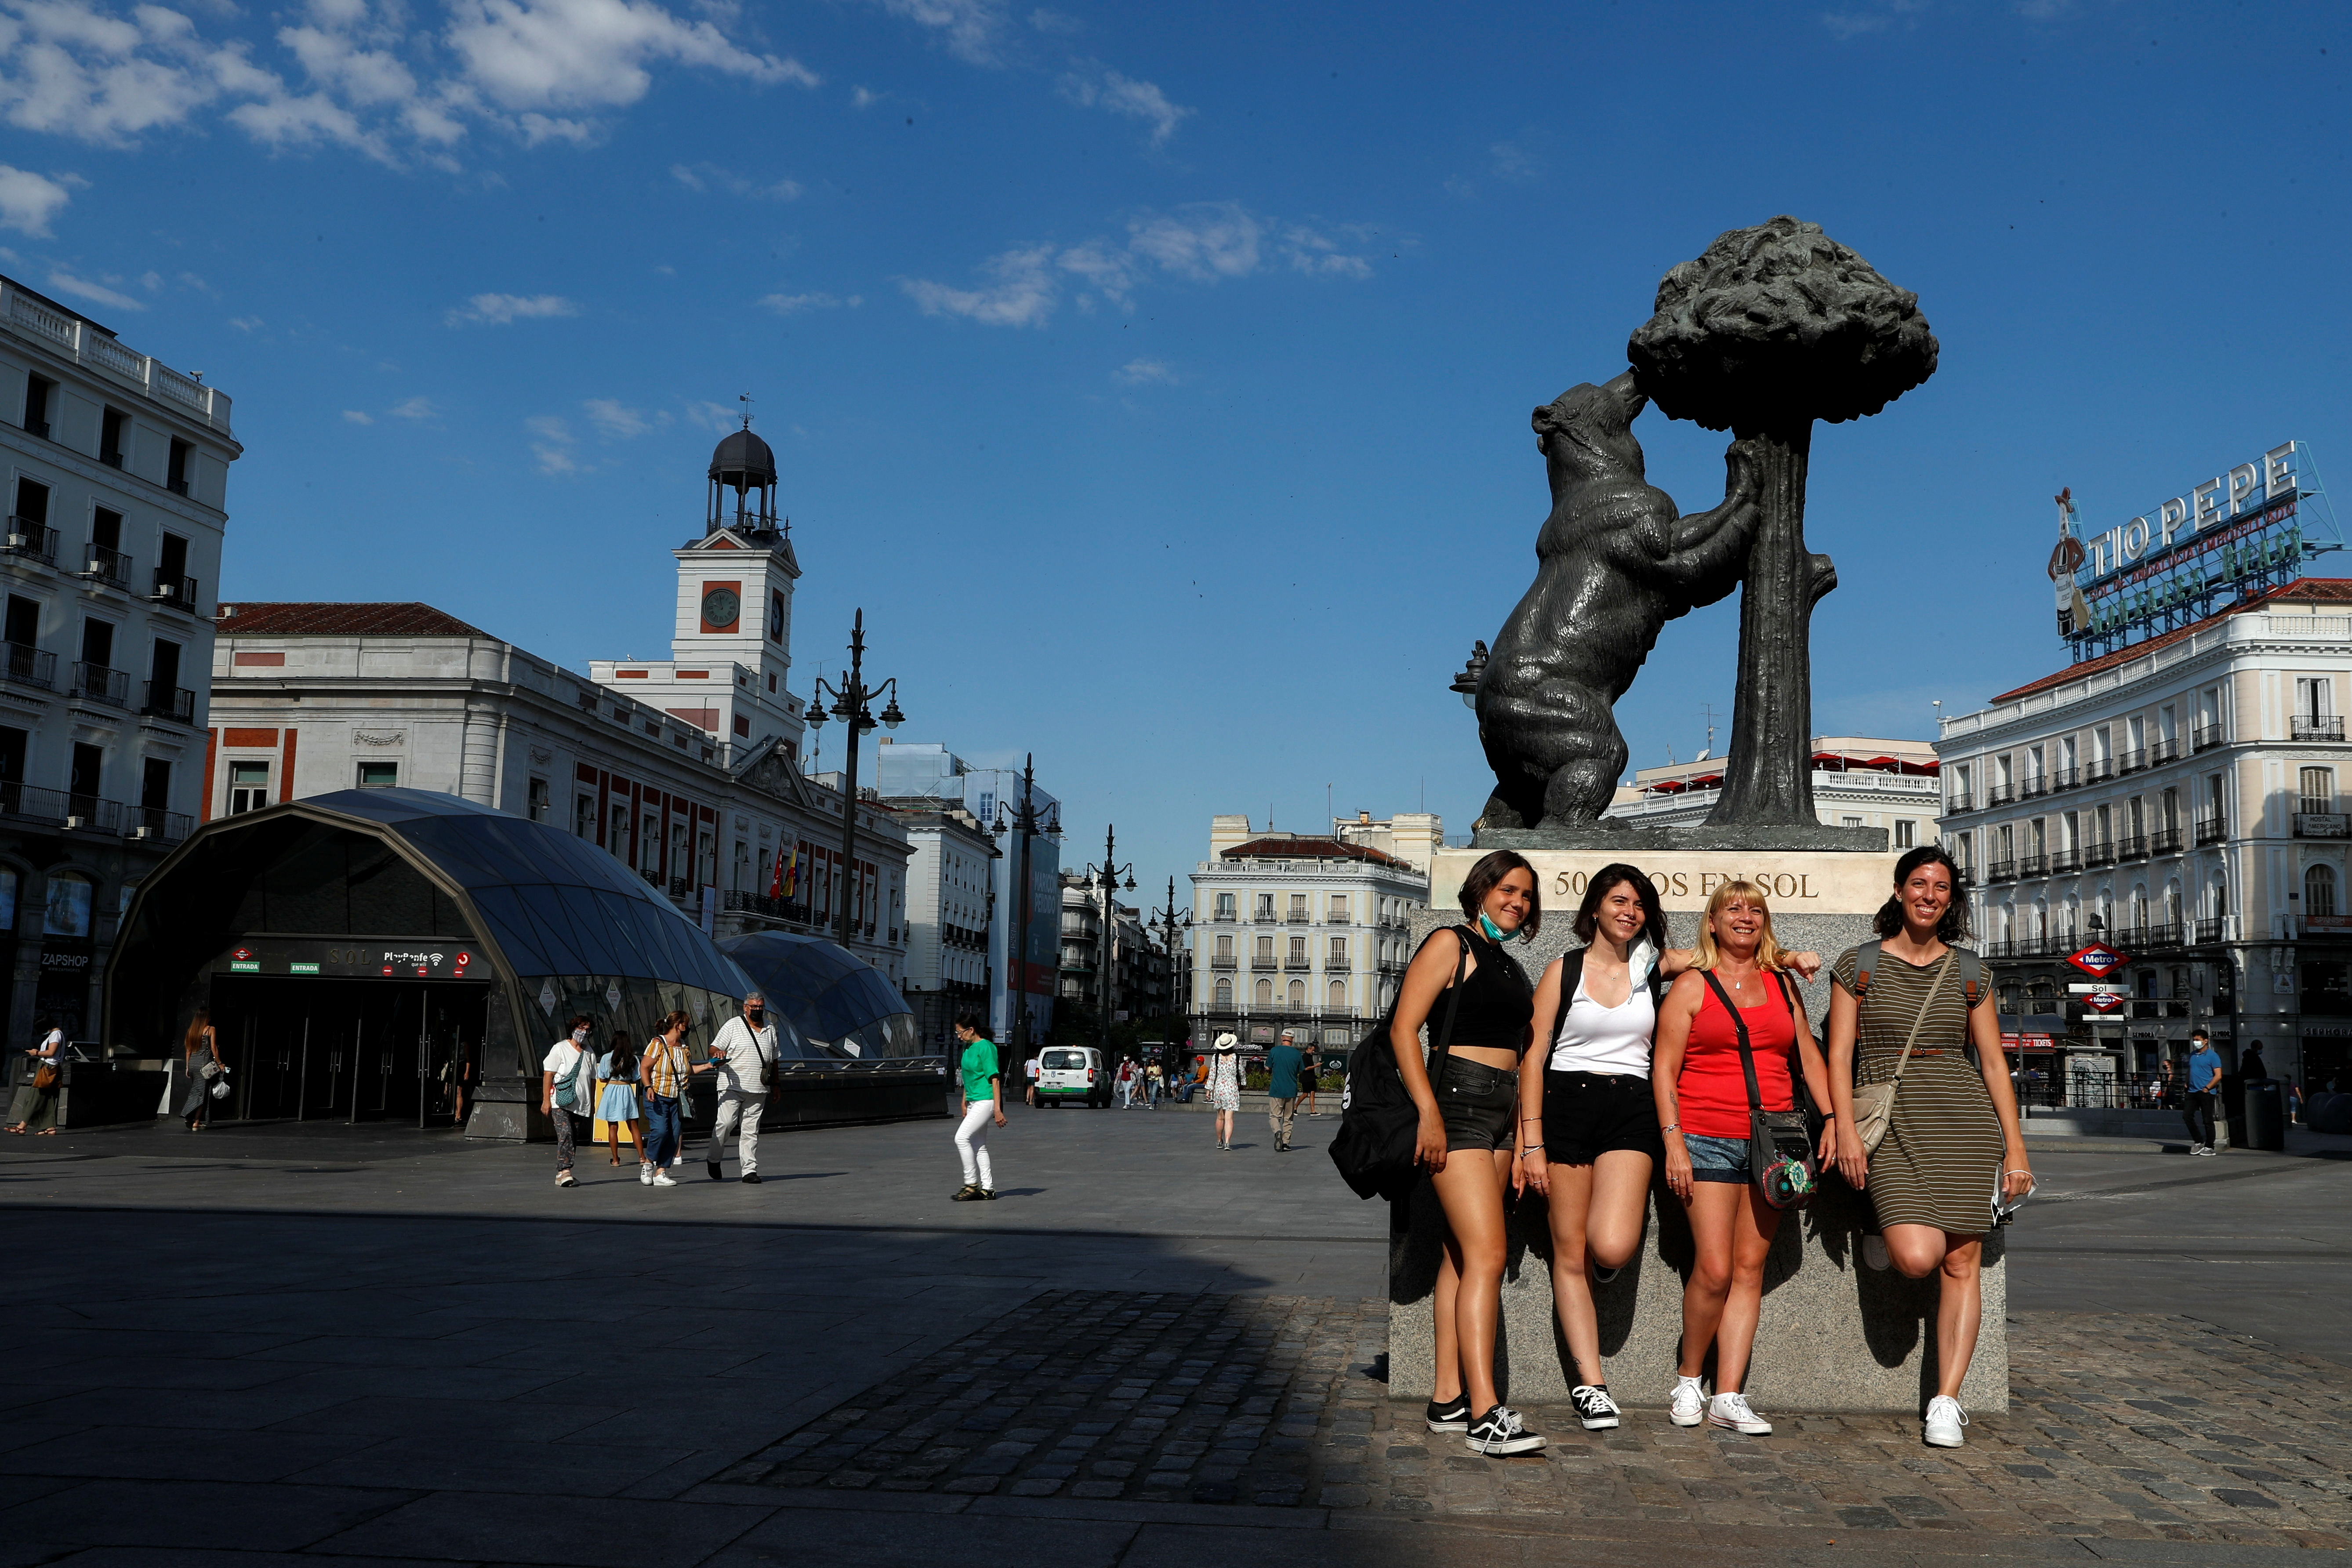 Women pose at Puerta del Sol square without their masks on as they are no longer required outdoors from June 26, amid the coronavirus disease (COVID-19) pandemic in Madrid, Spain, June 26, 2021. REUTERS/Susana Vera